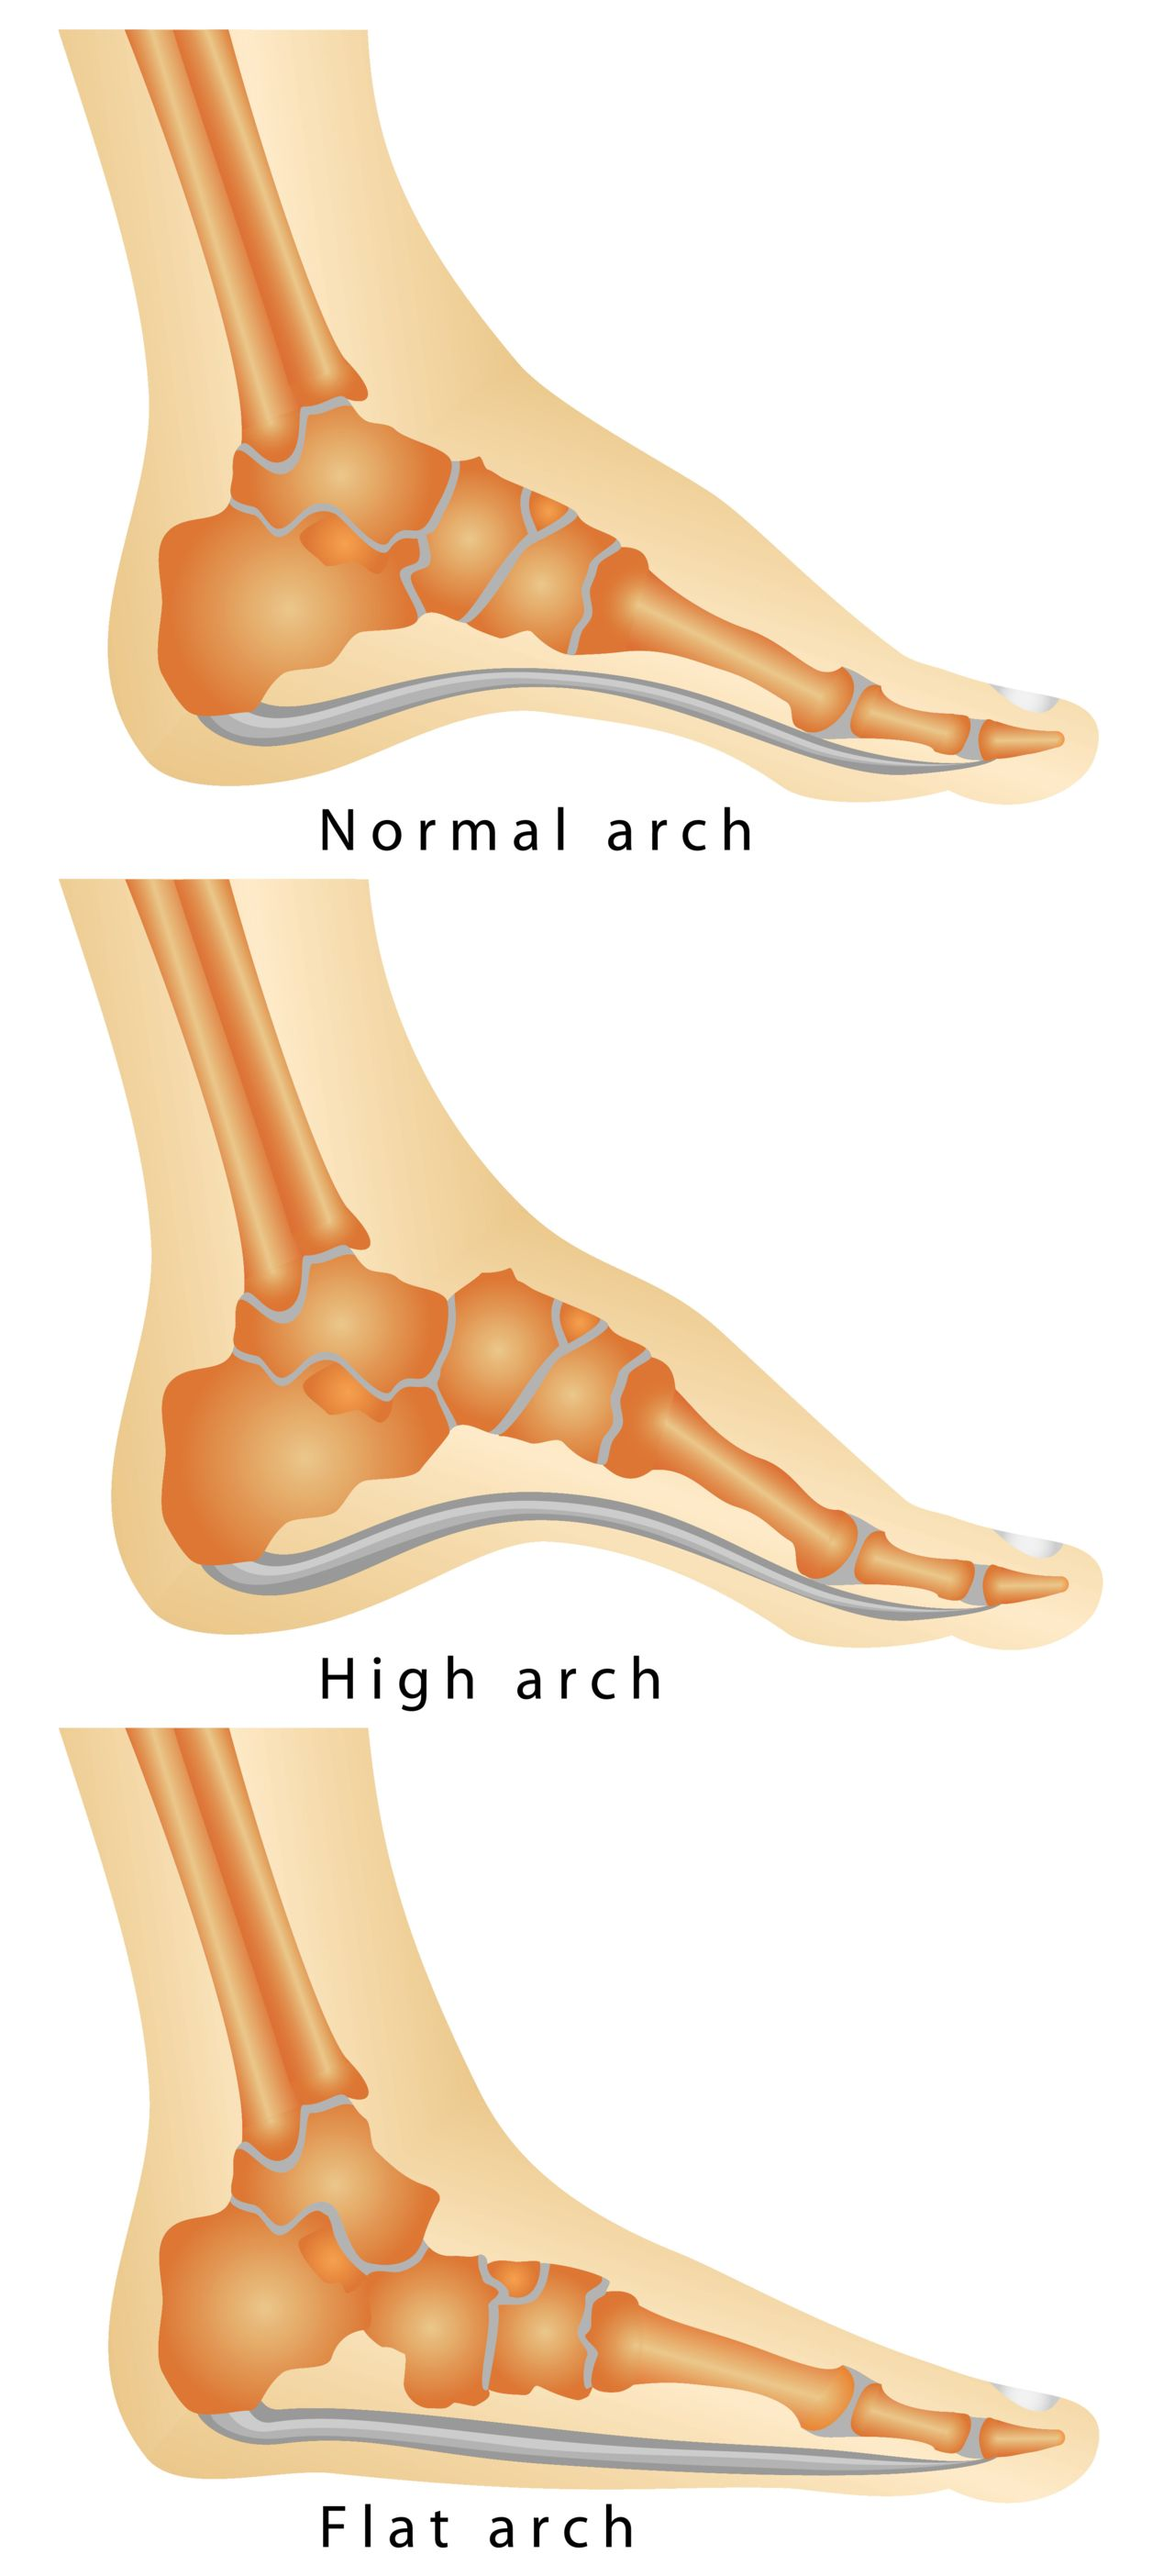 Your arch types determines what type of shoe you should use.